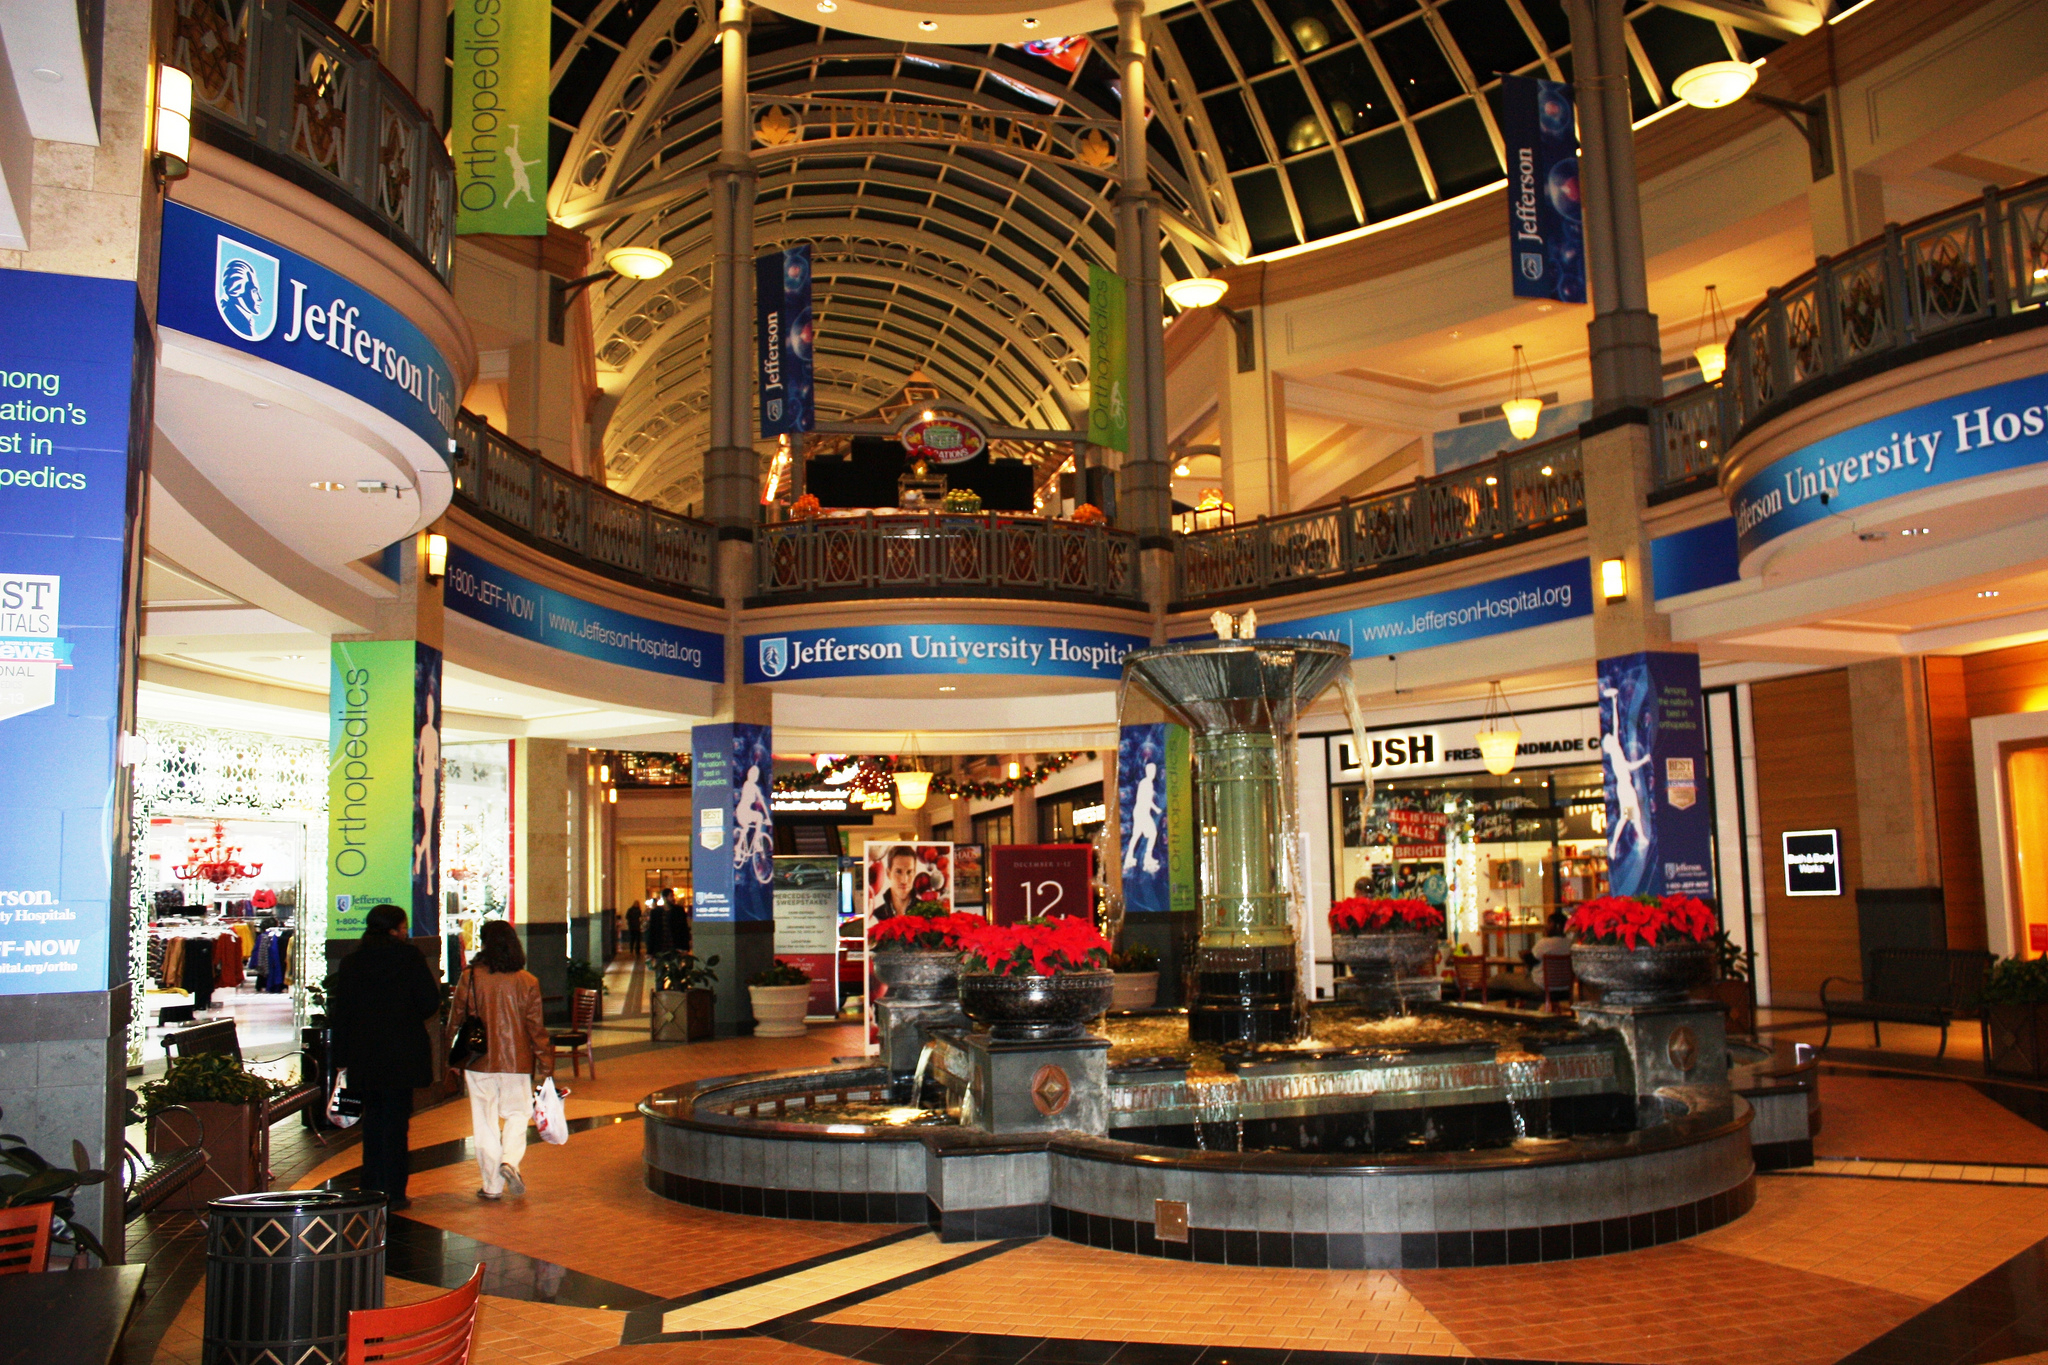 kop mall directory map with King Of Prussia Mall on Retail Marketing Turn Problems Into Opportunities also Belden Village Mall Map also Stores moreover Real Housewife Bethenny Frankel  ing King Prussia Mall together with 2005 10 01 archive.